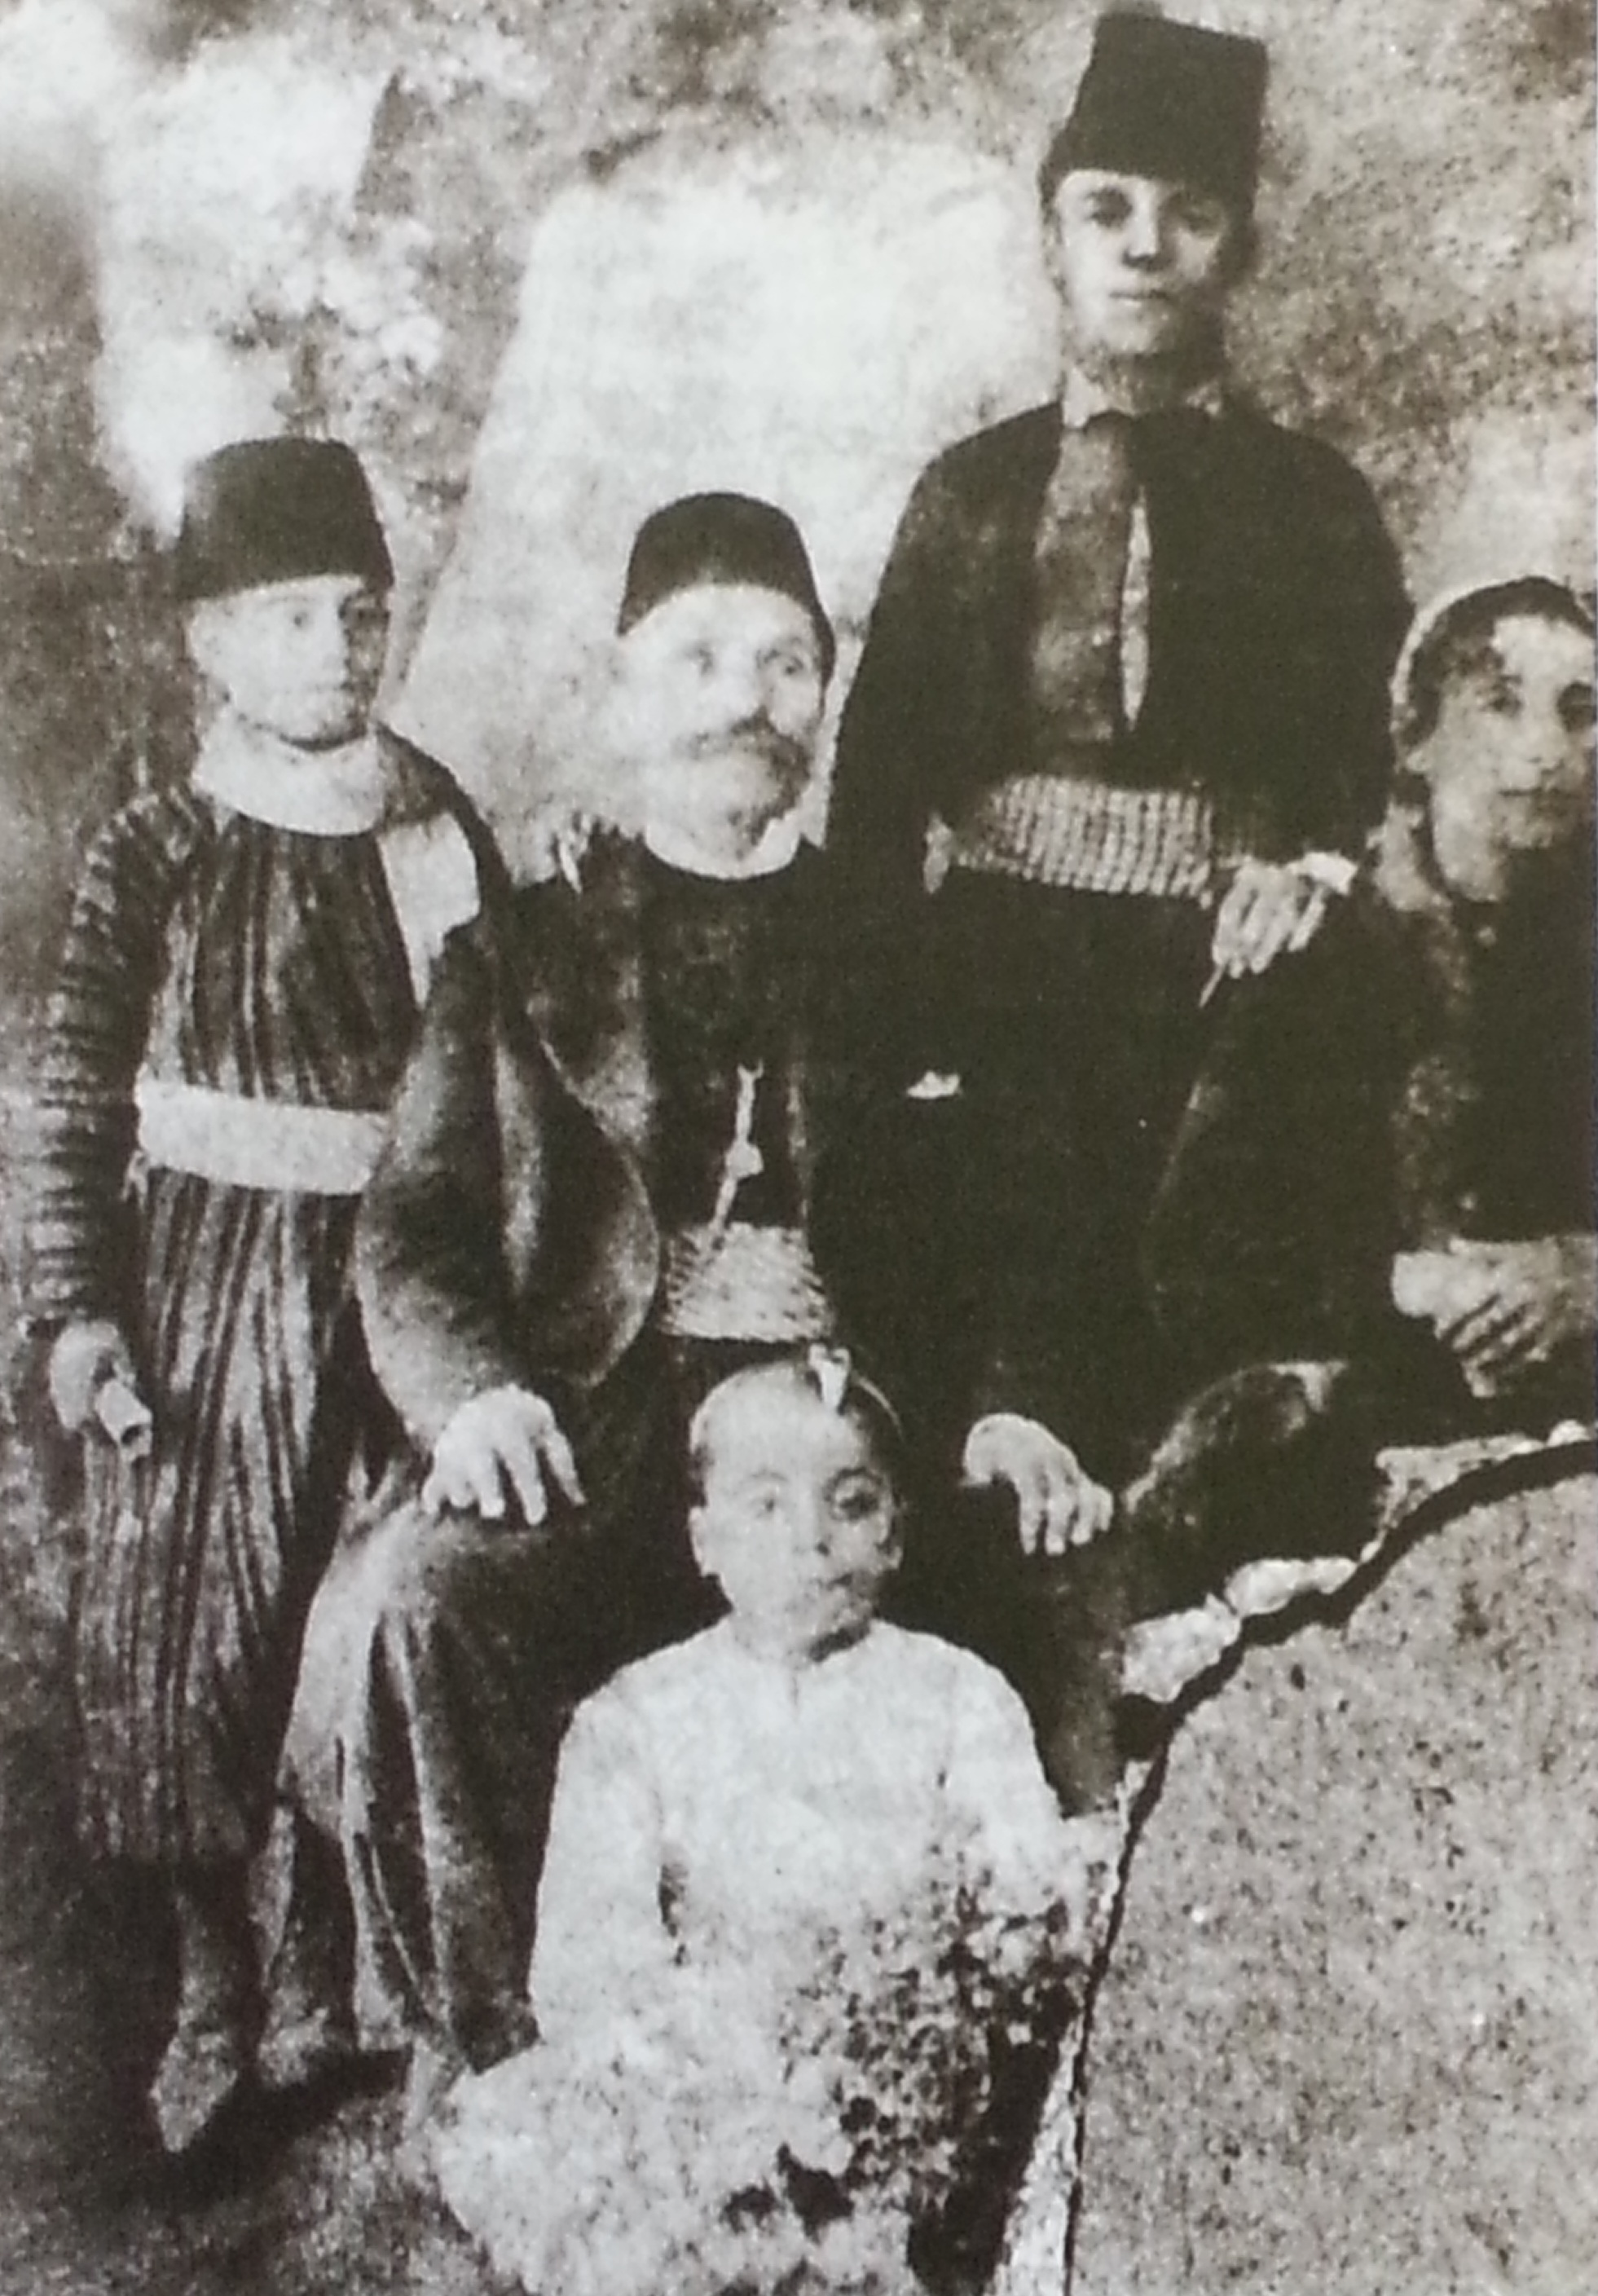 Ottoman Empire Paintings File:Khalil Gibran Fam...